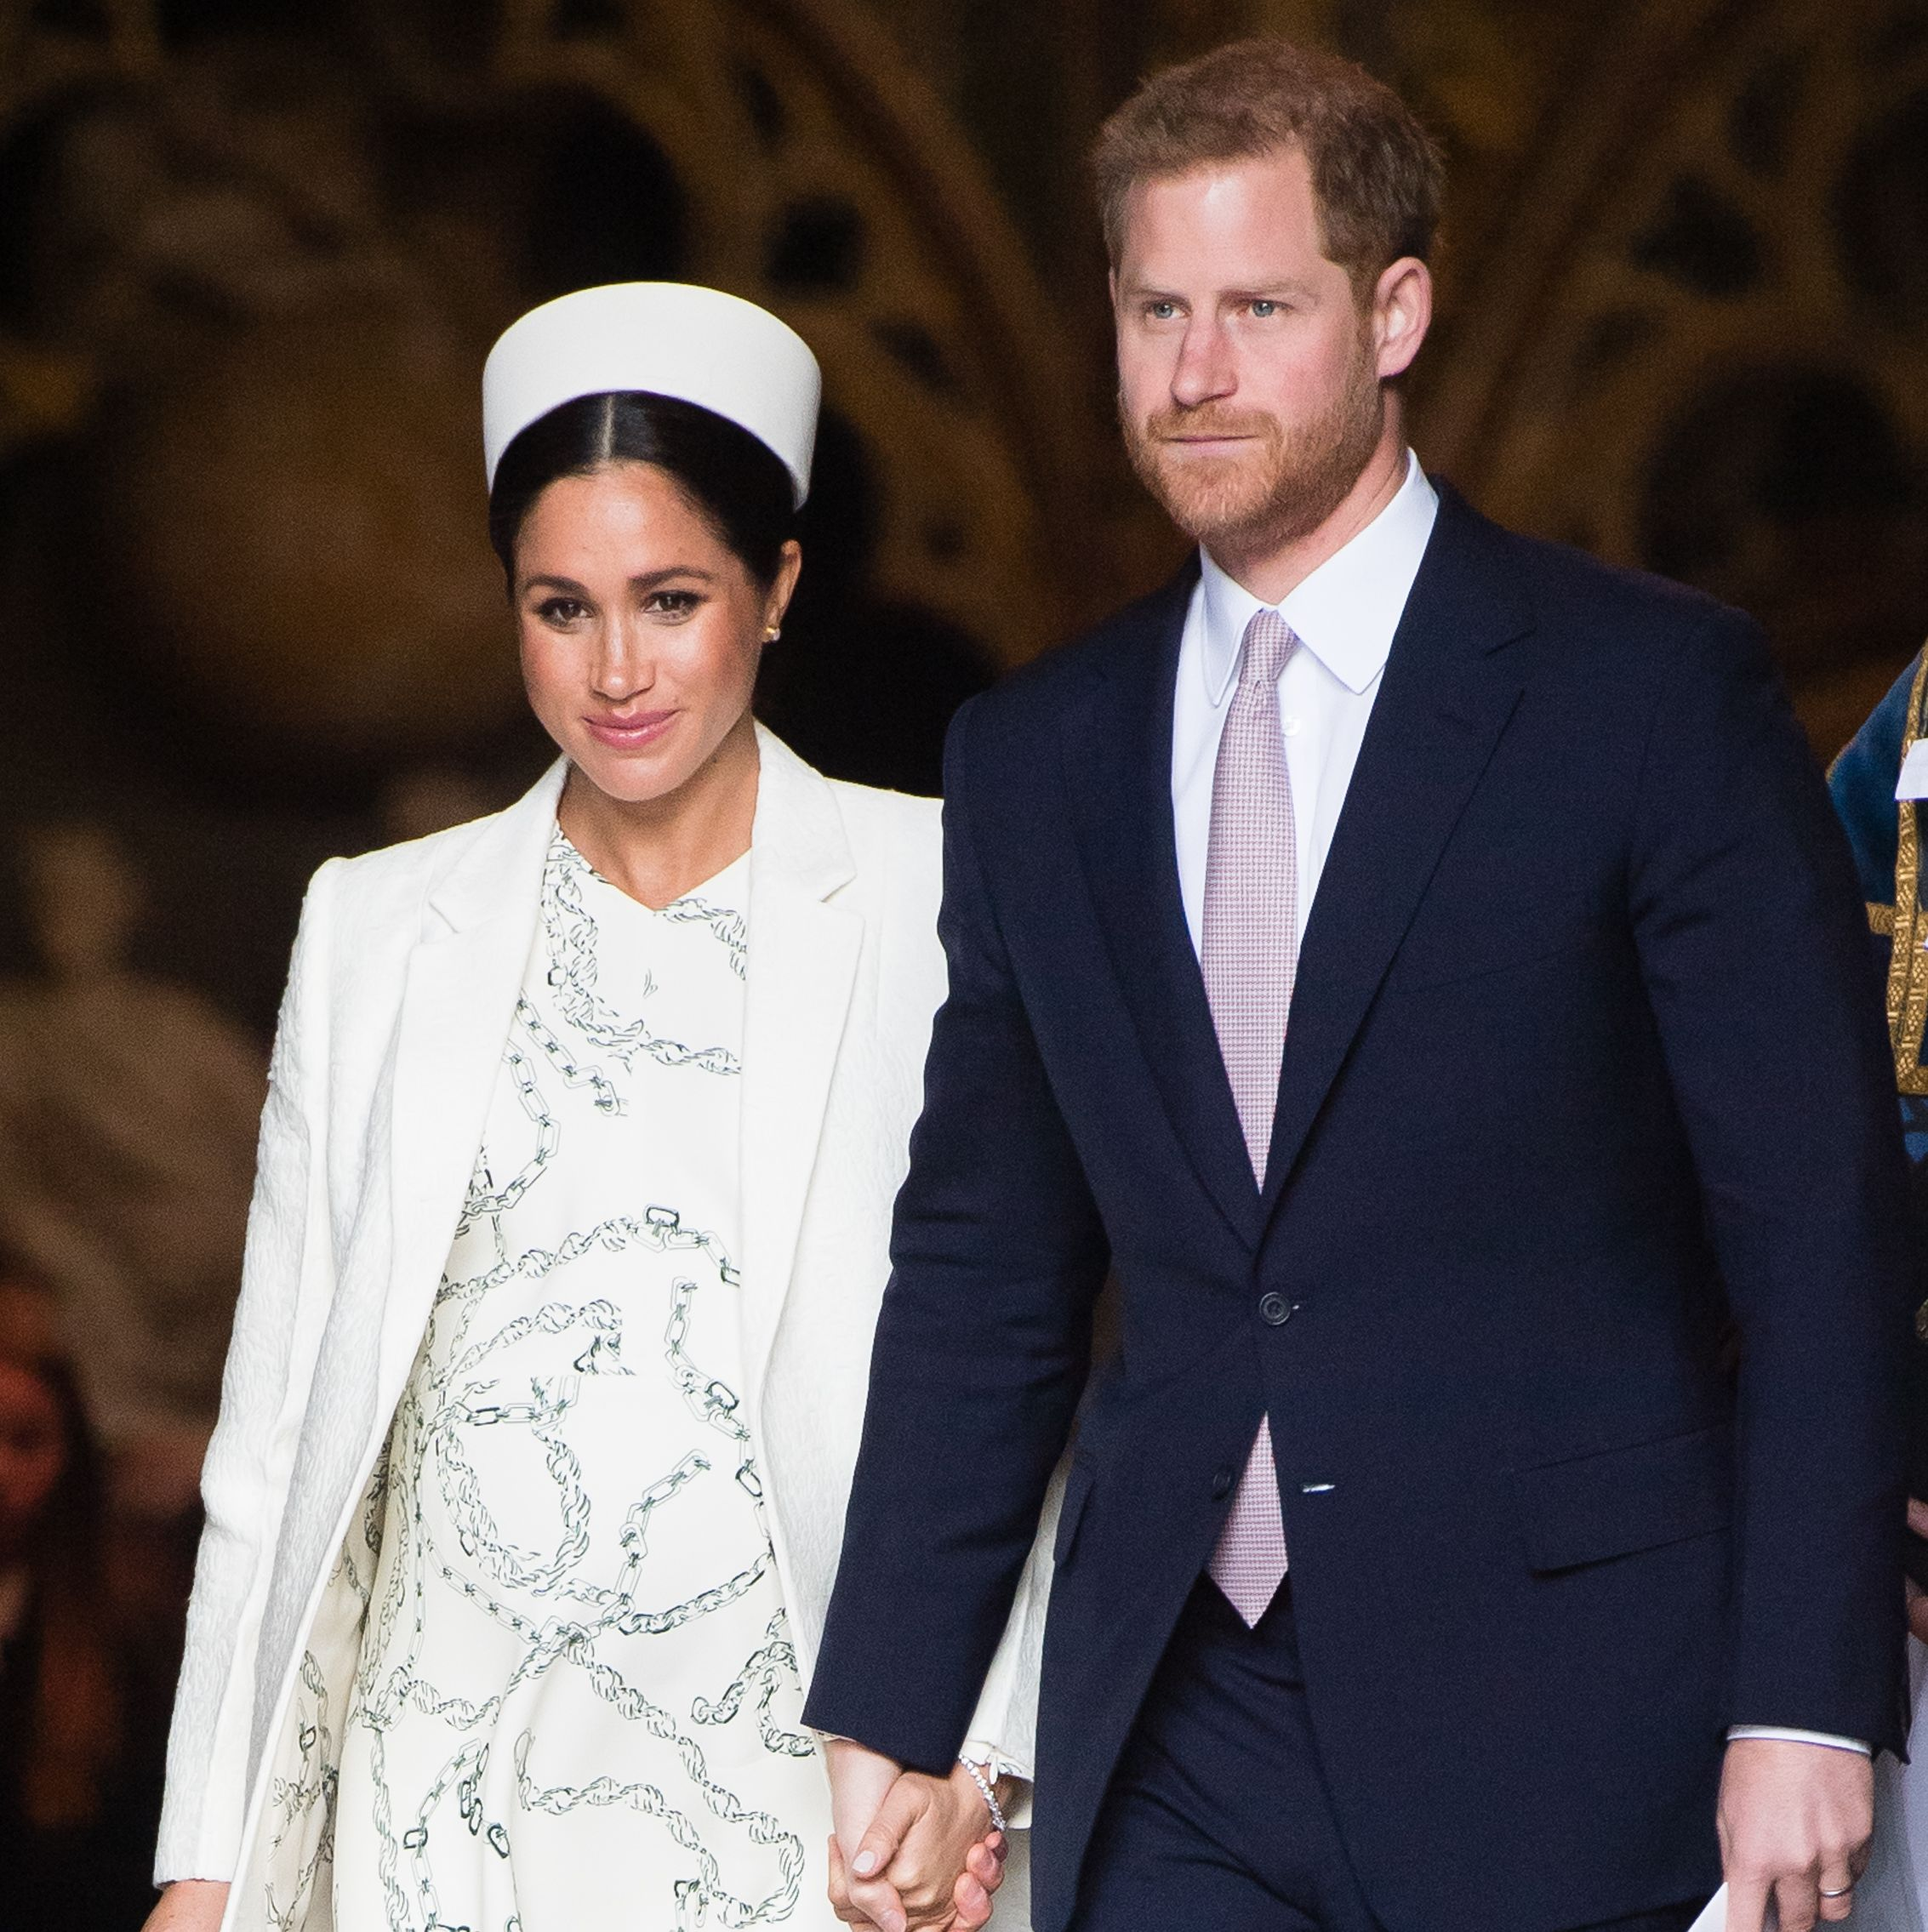 Meghan Markle Has Attended Her Last Public Engagements Before Giving Birth